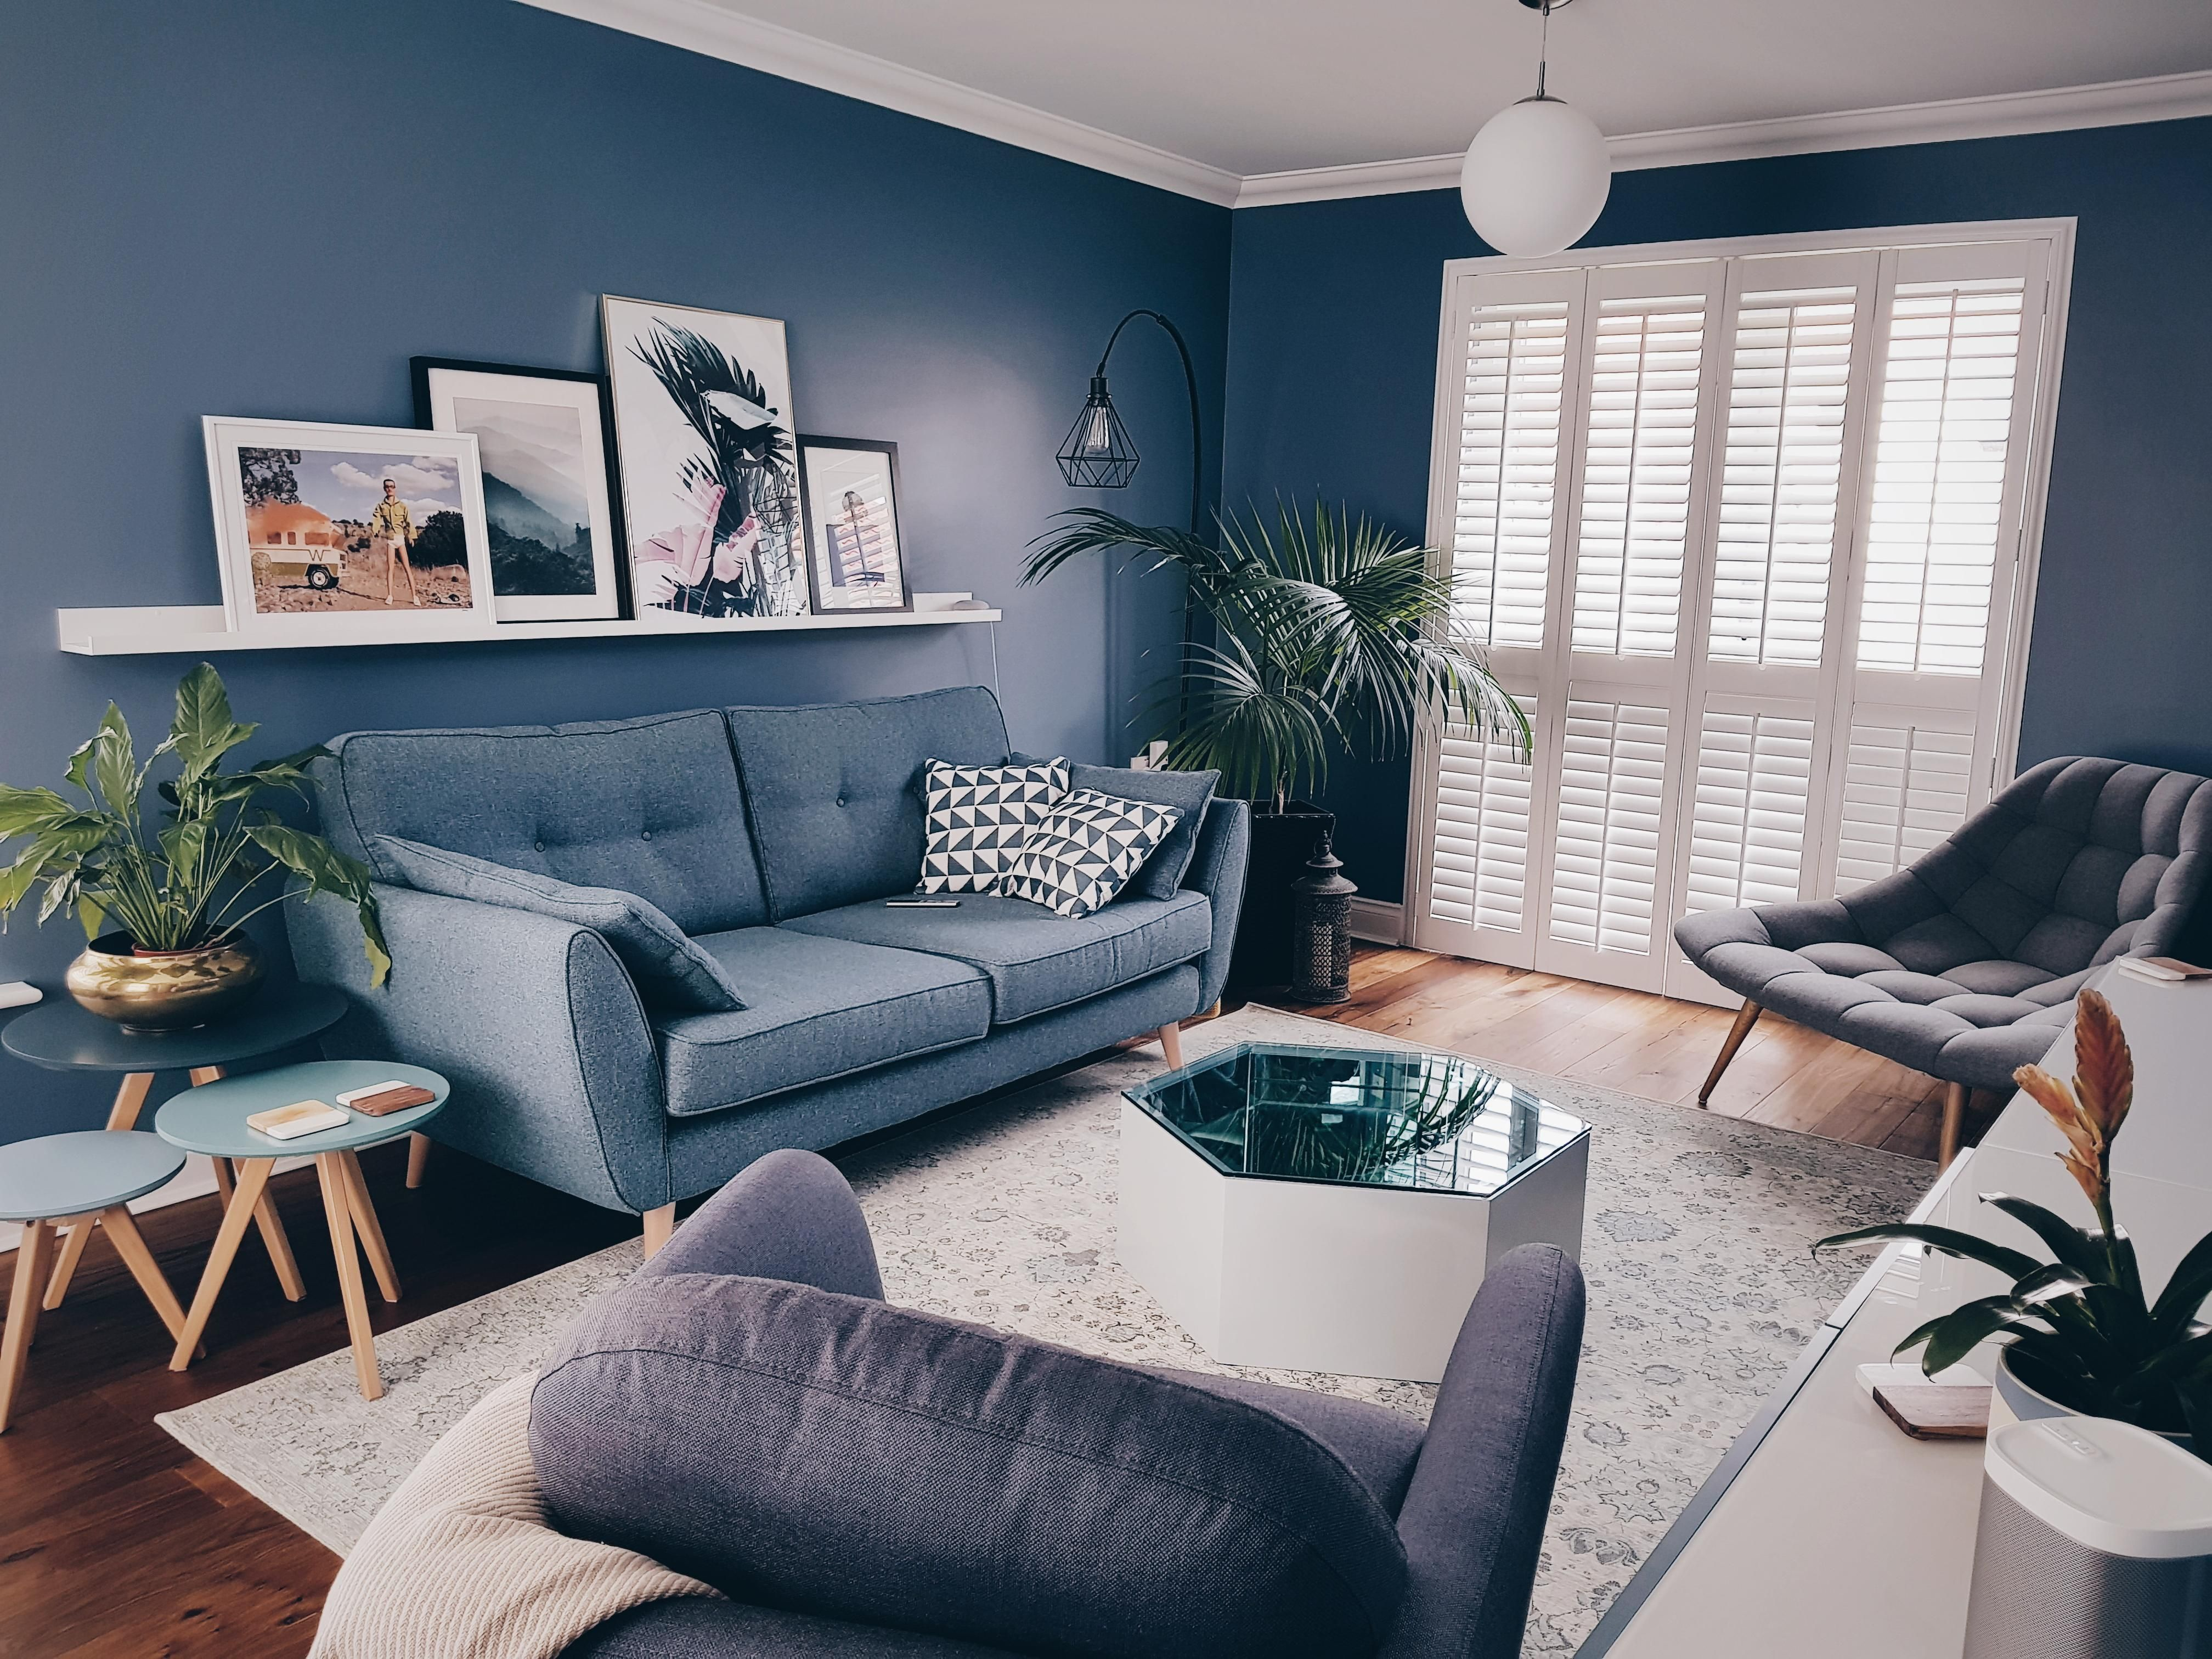 Top Scoring Links Malelivingspace Stylish Living Room Living Spaces Home Living Room